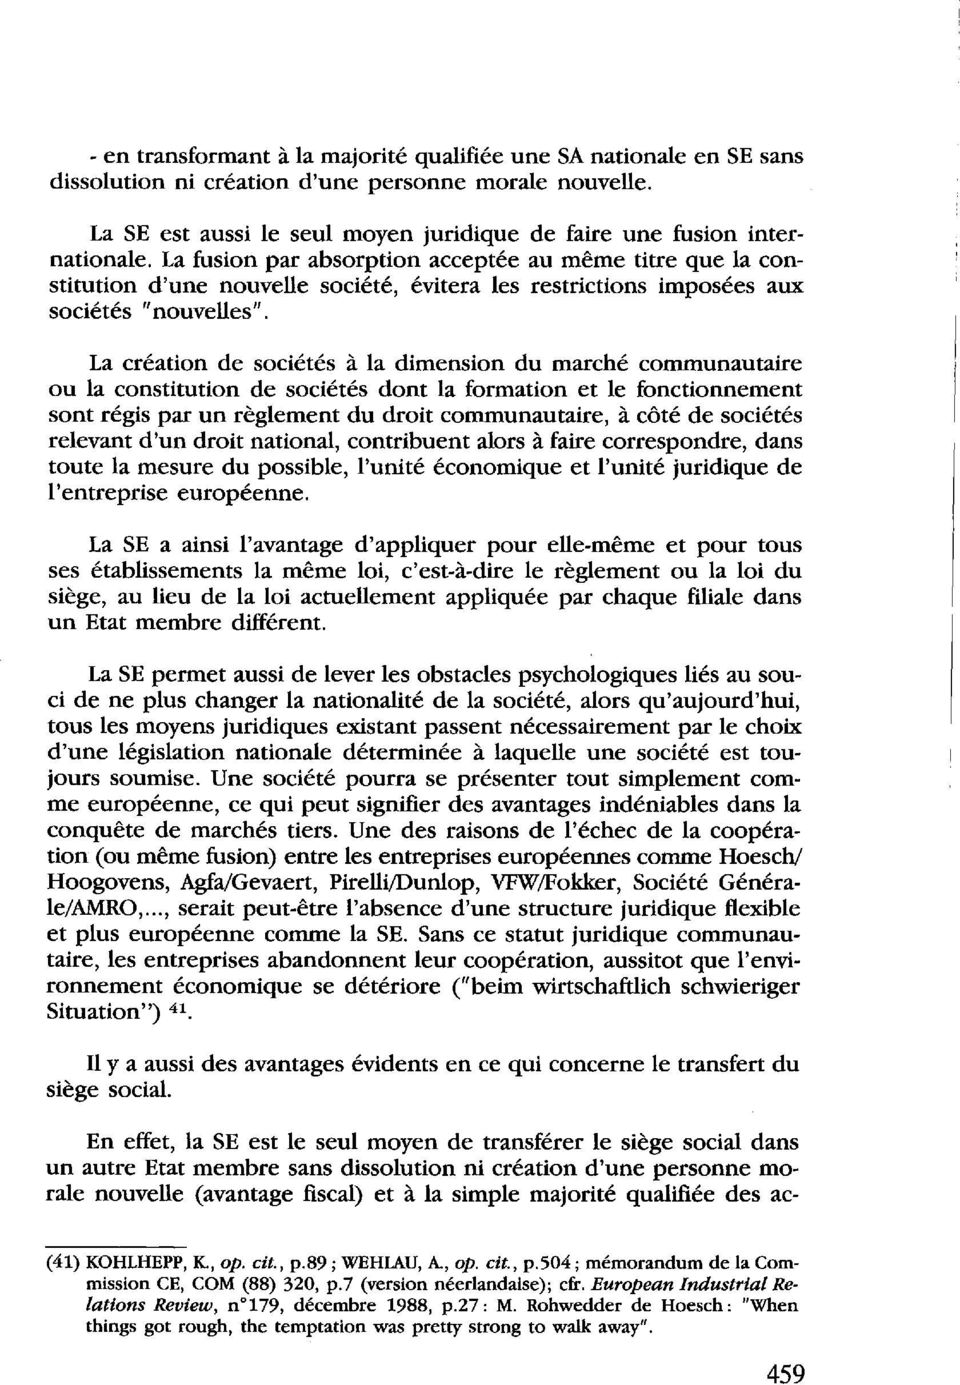 La fusion par absorption acceptee au meme titre que Ia constitution d'une nouvelle societe, evitera les restrictions imposees aux societes 11 nouvelles 11 La creation de societes a Ia dimension du